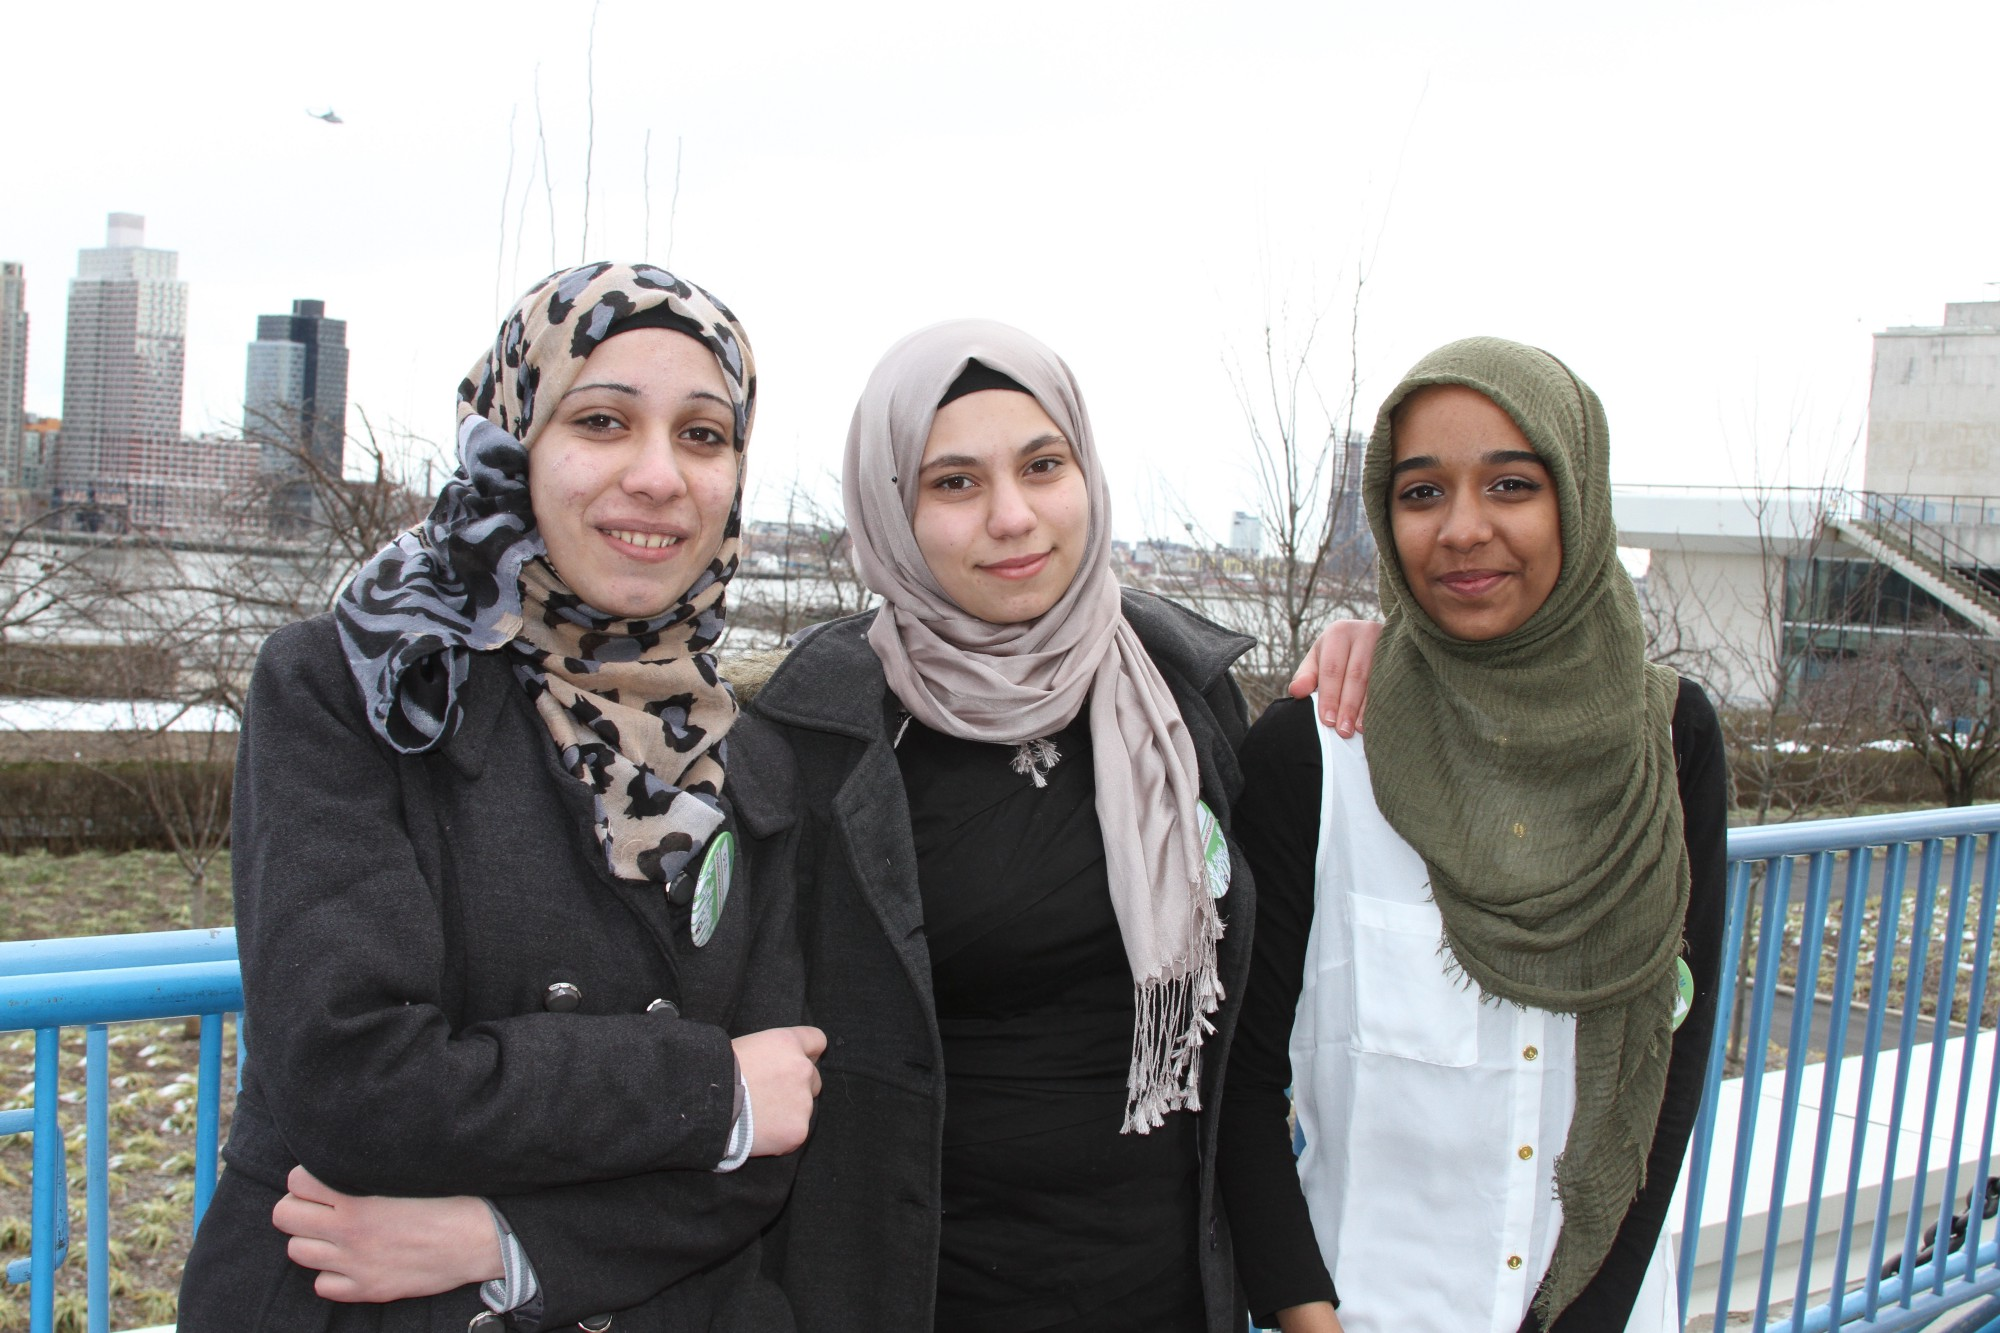 Syrian refugees Ola and Batoul with their friend Esrah outside the United Nations. The girls joined Malala Fund at an event during the Commission on the Status of Women Youth Forum.